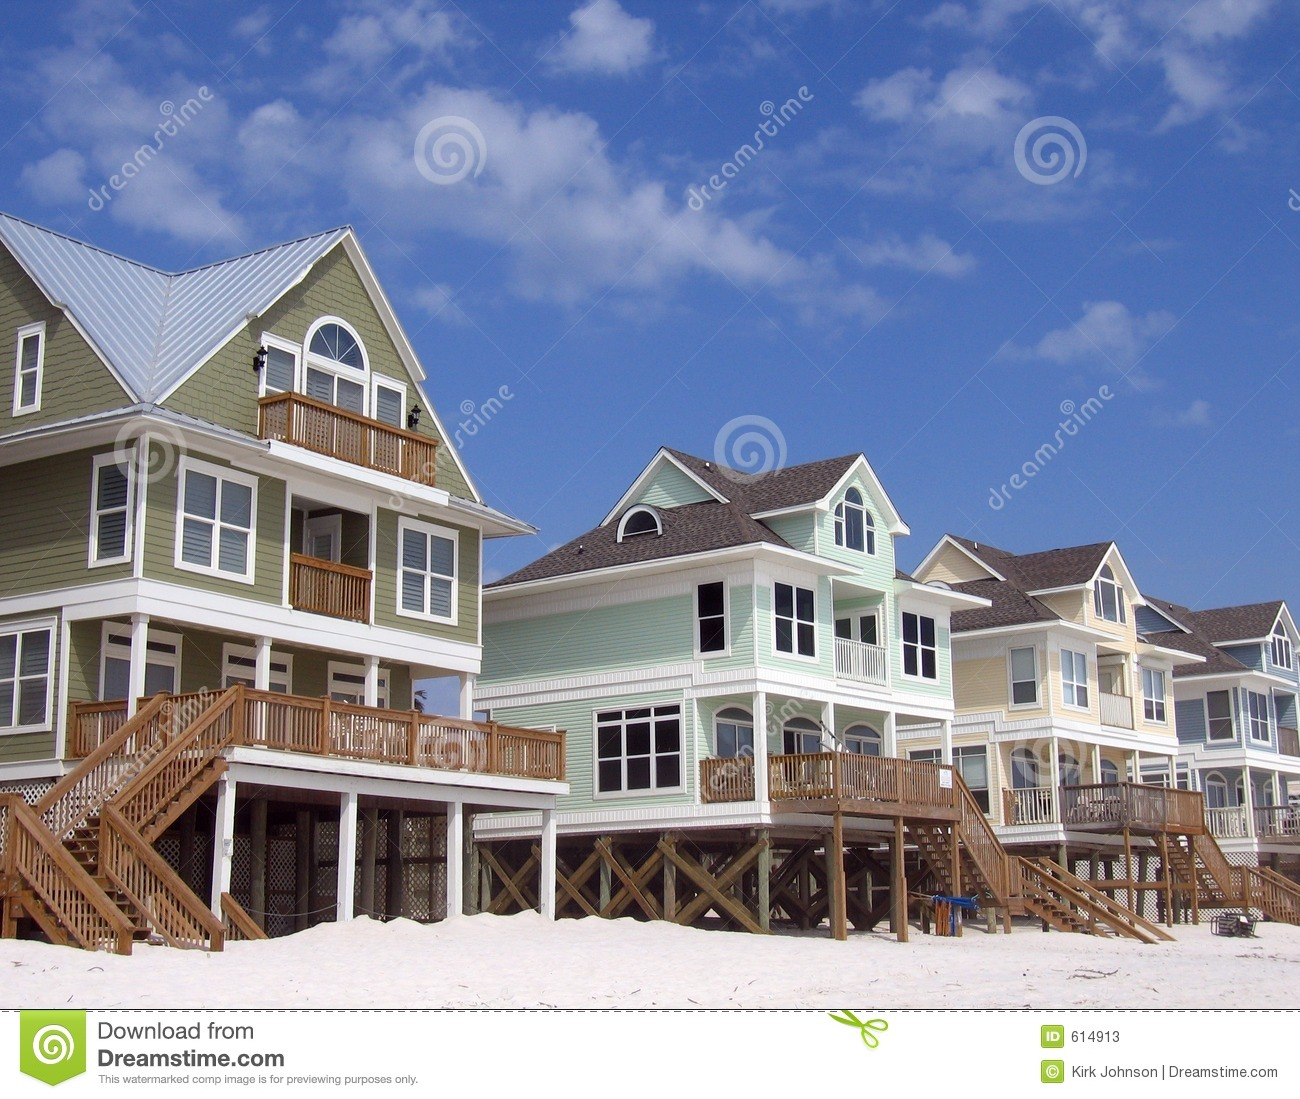 Borrowed from http://www.dreamstime.com/stock-photos-beach-homes-blue-sky-background-image614913